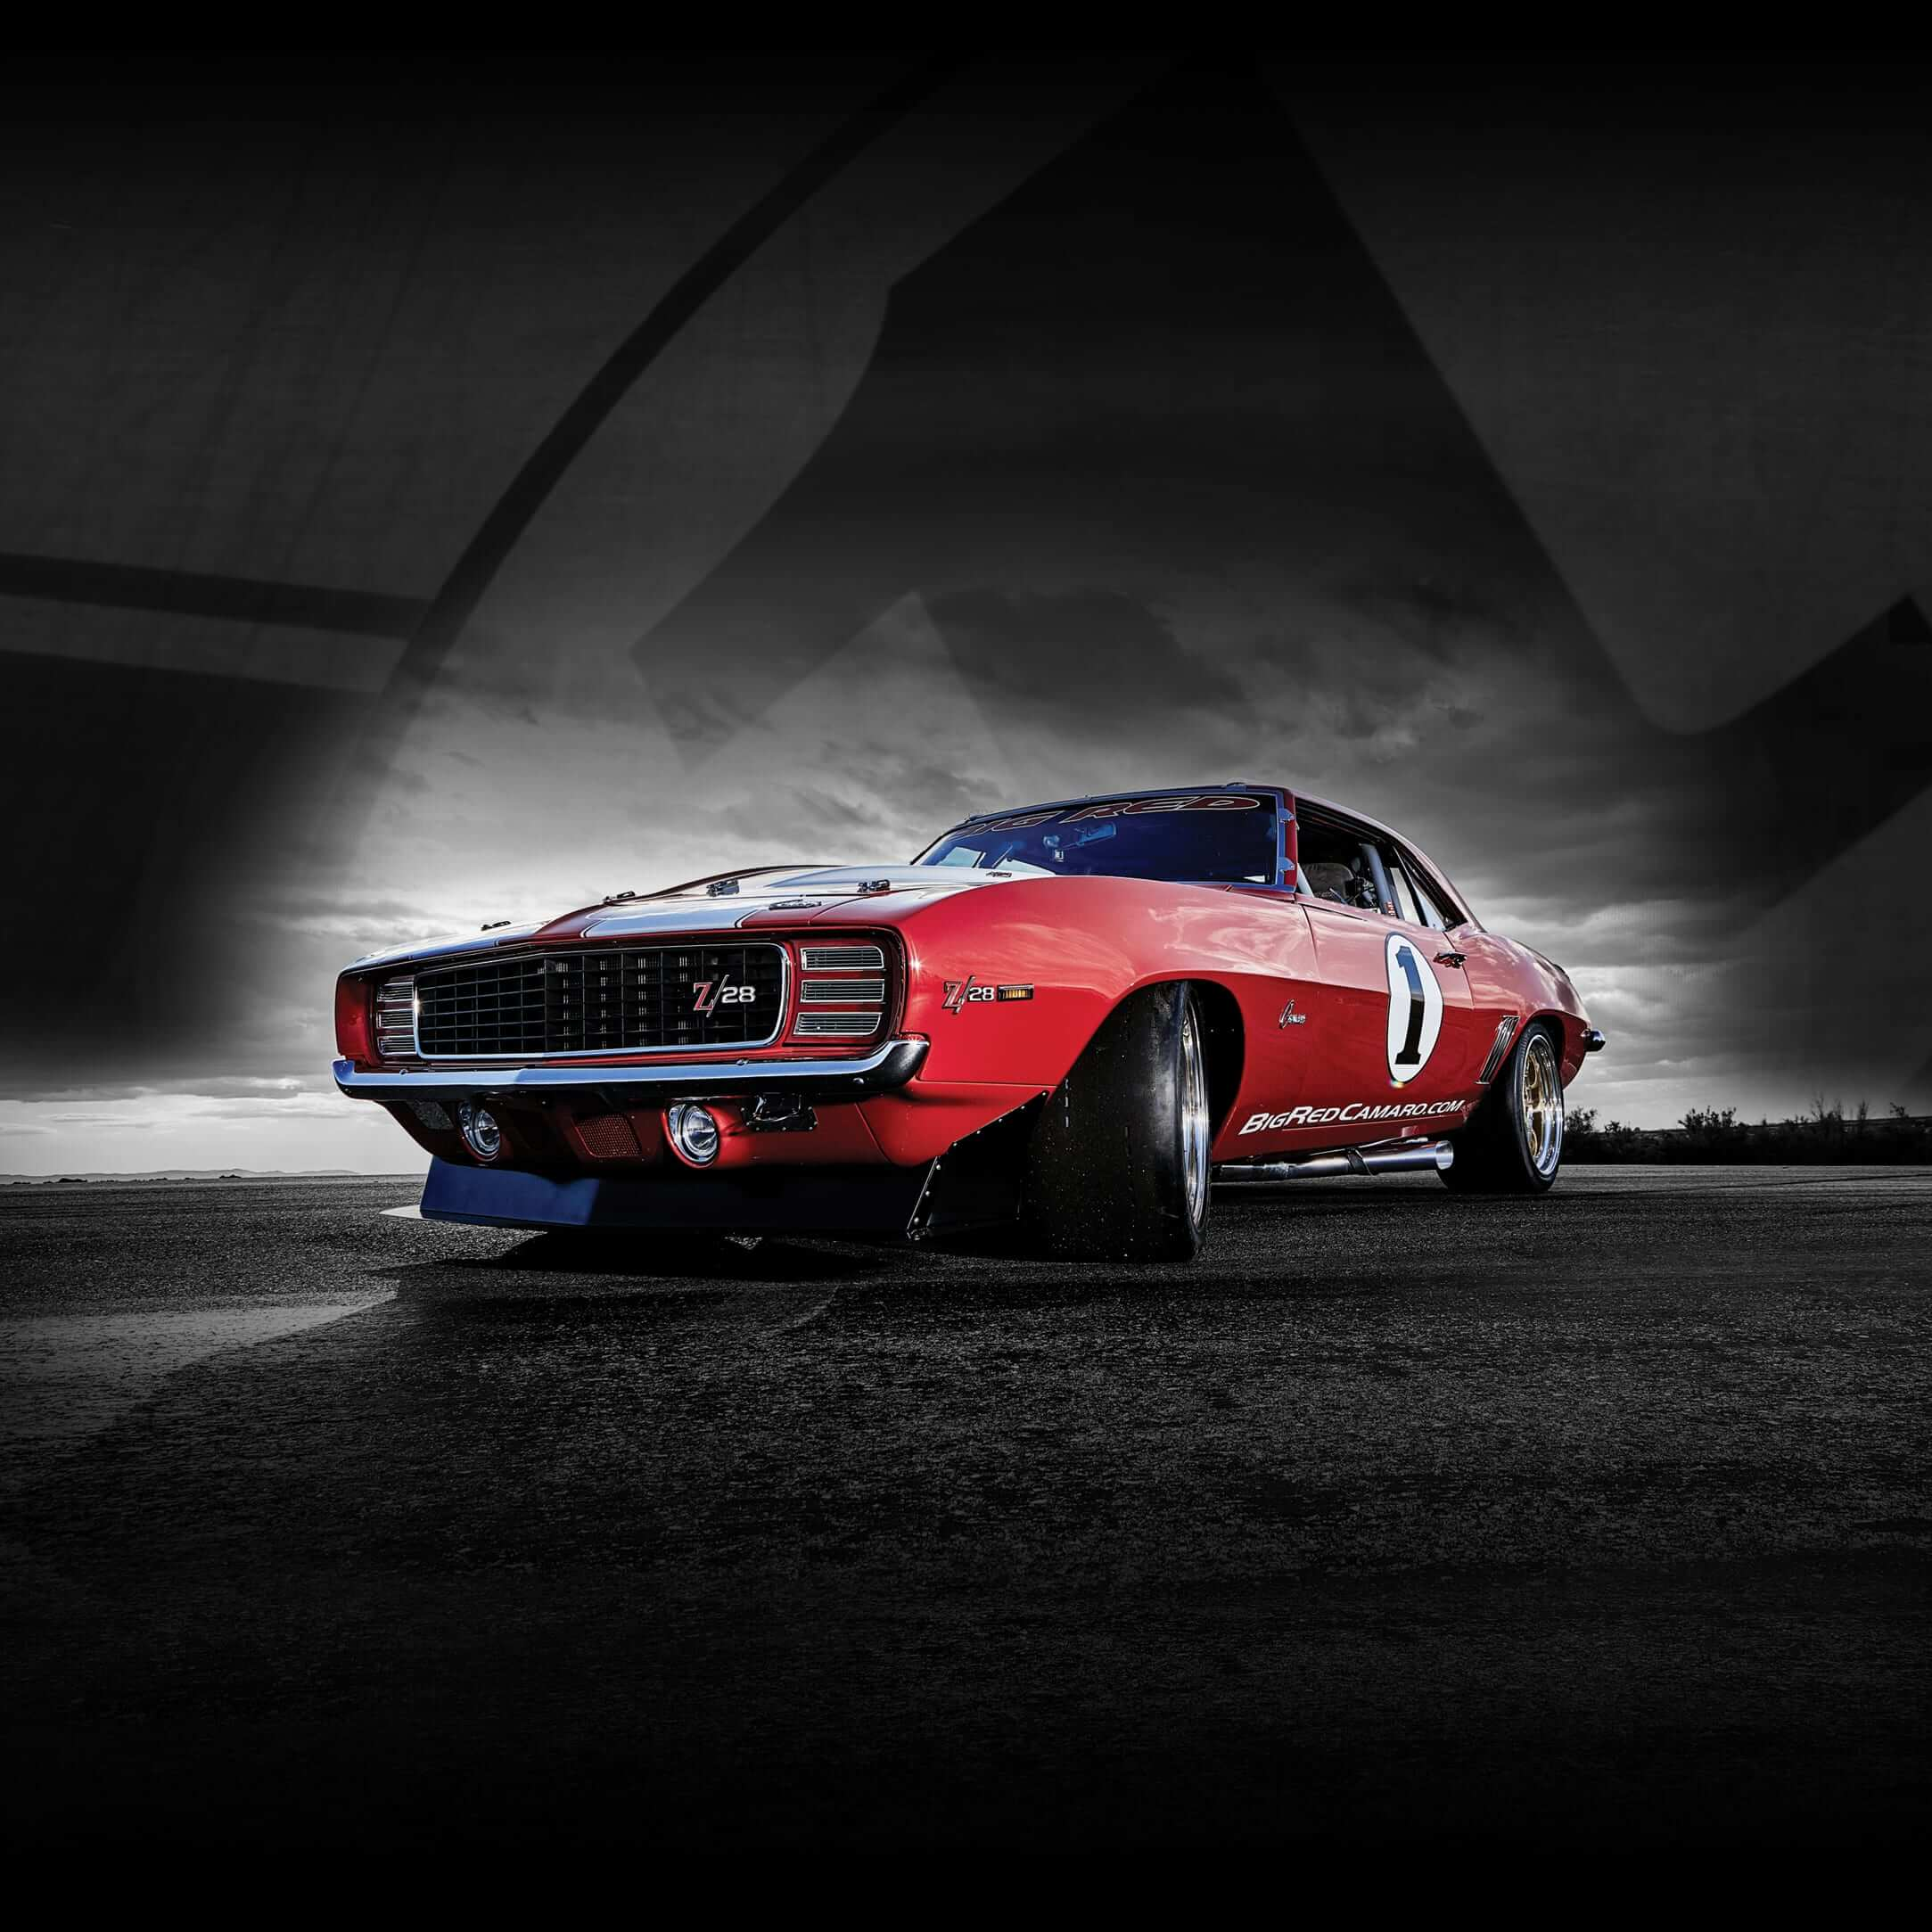 Big Red Camaro Front Beauty Shot with Grey Background